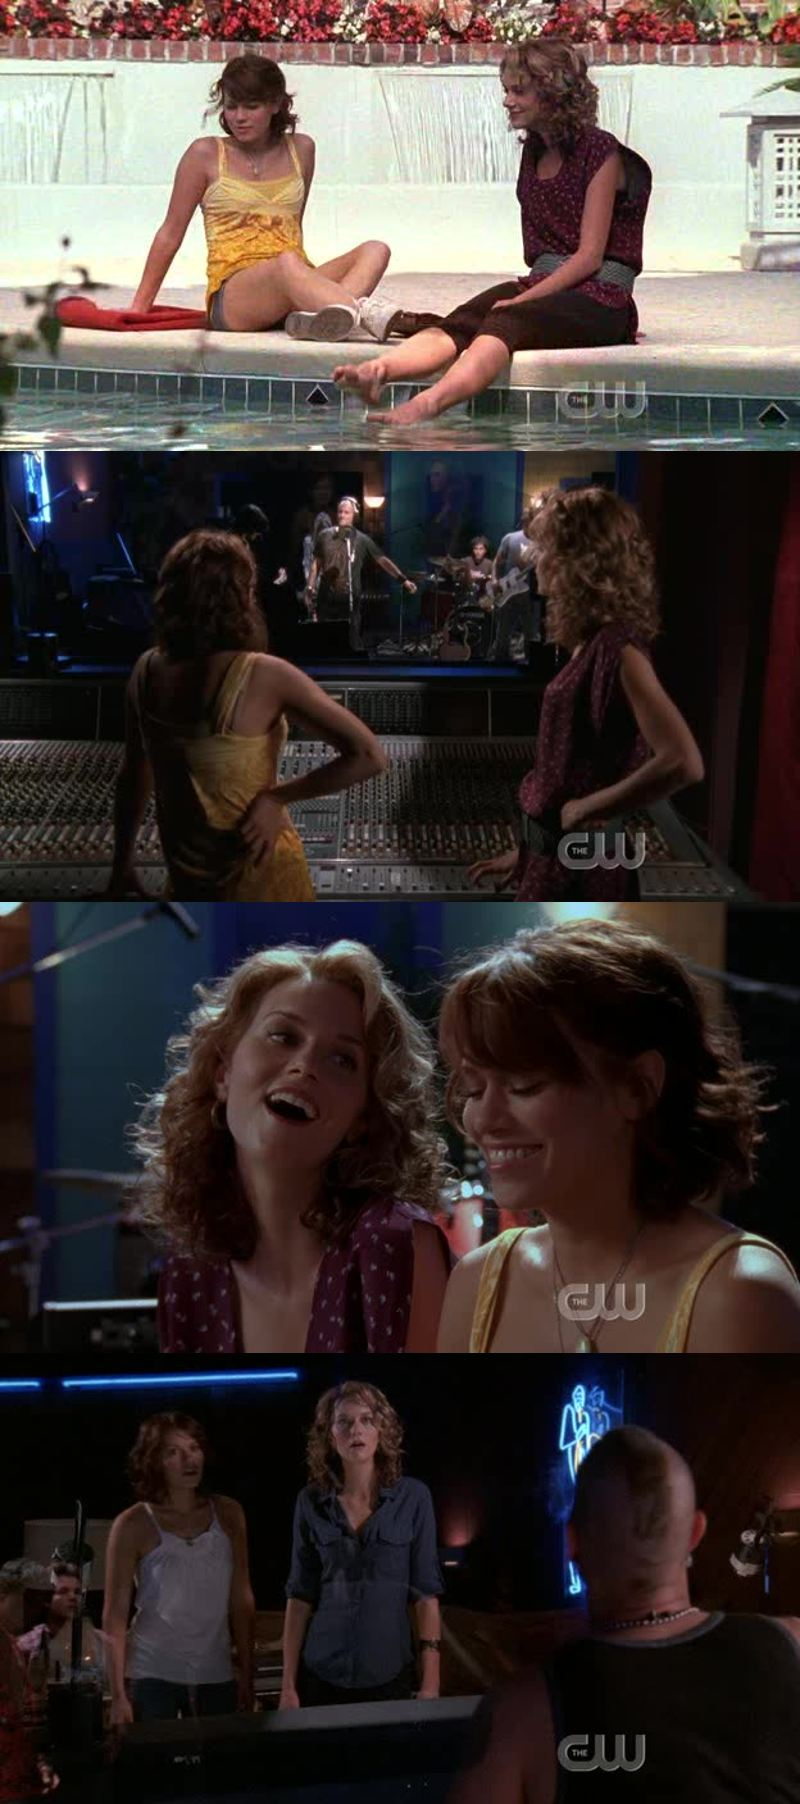 also loving peyton and haley - that we never got enough of